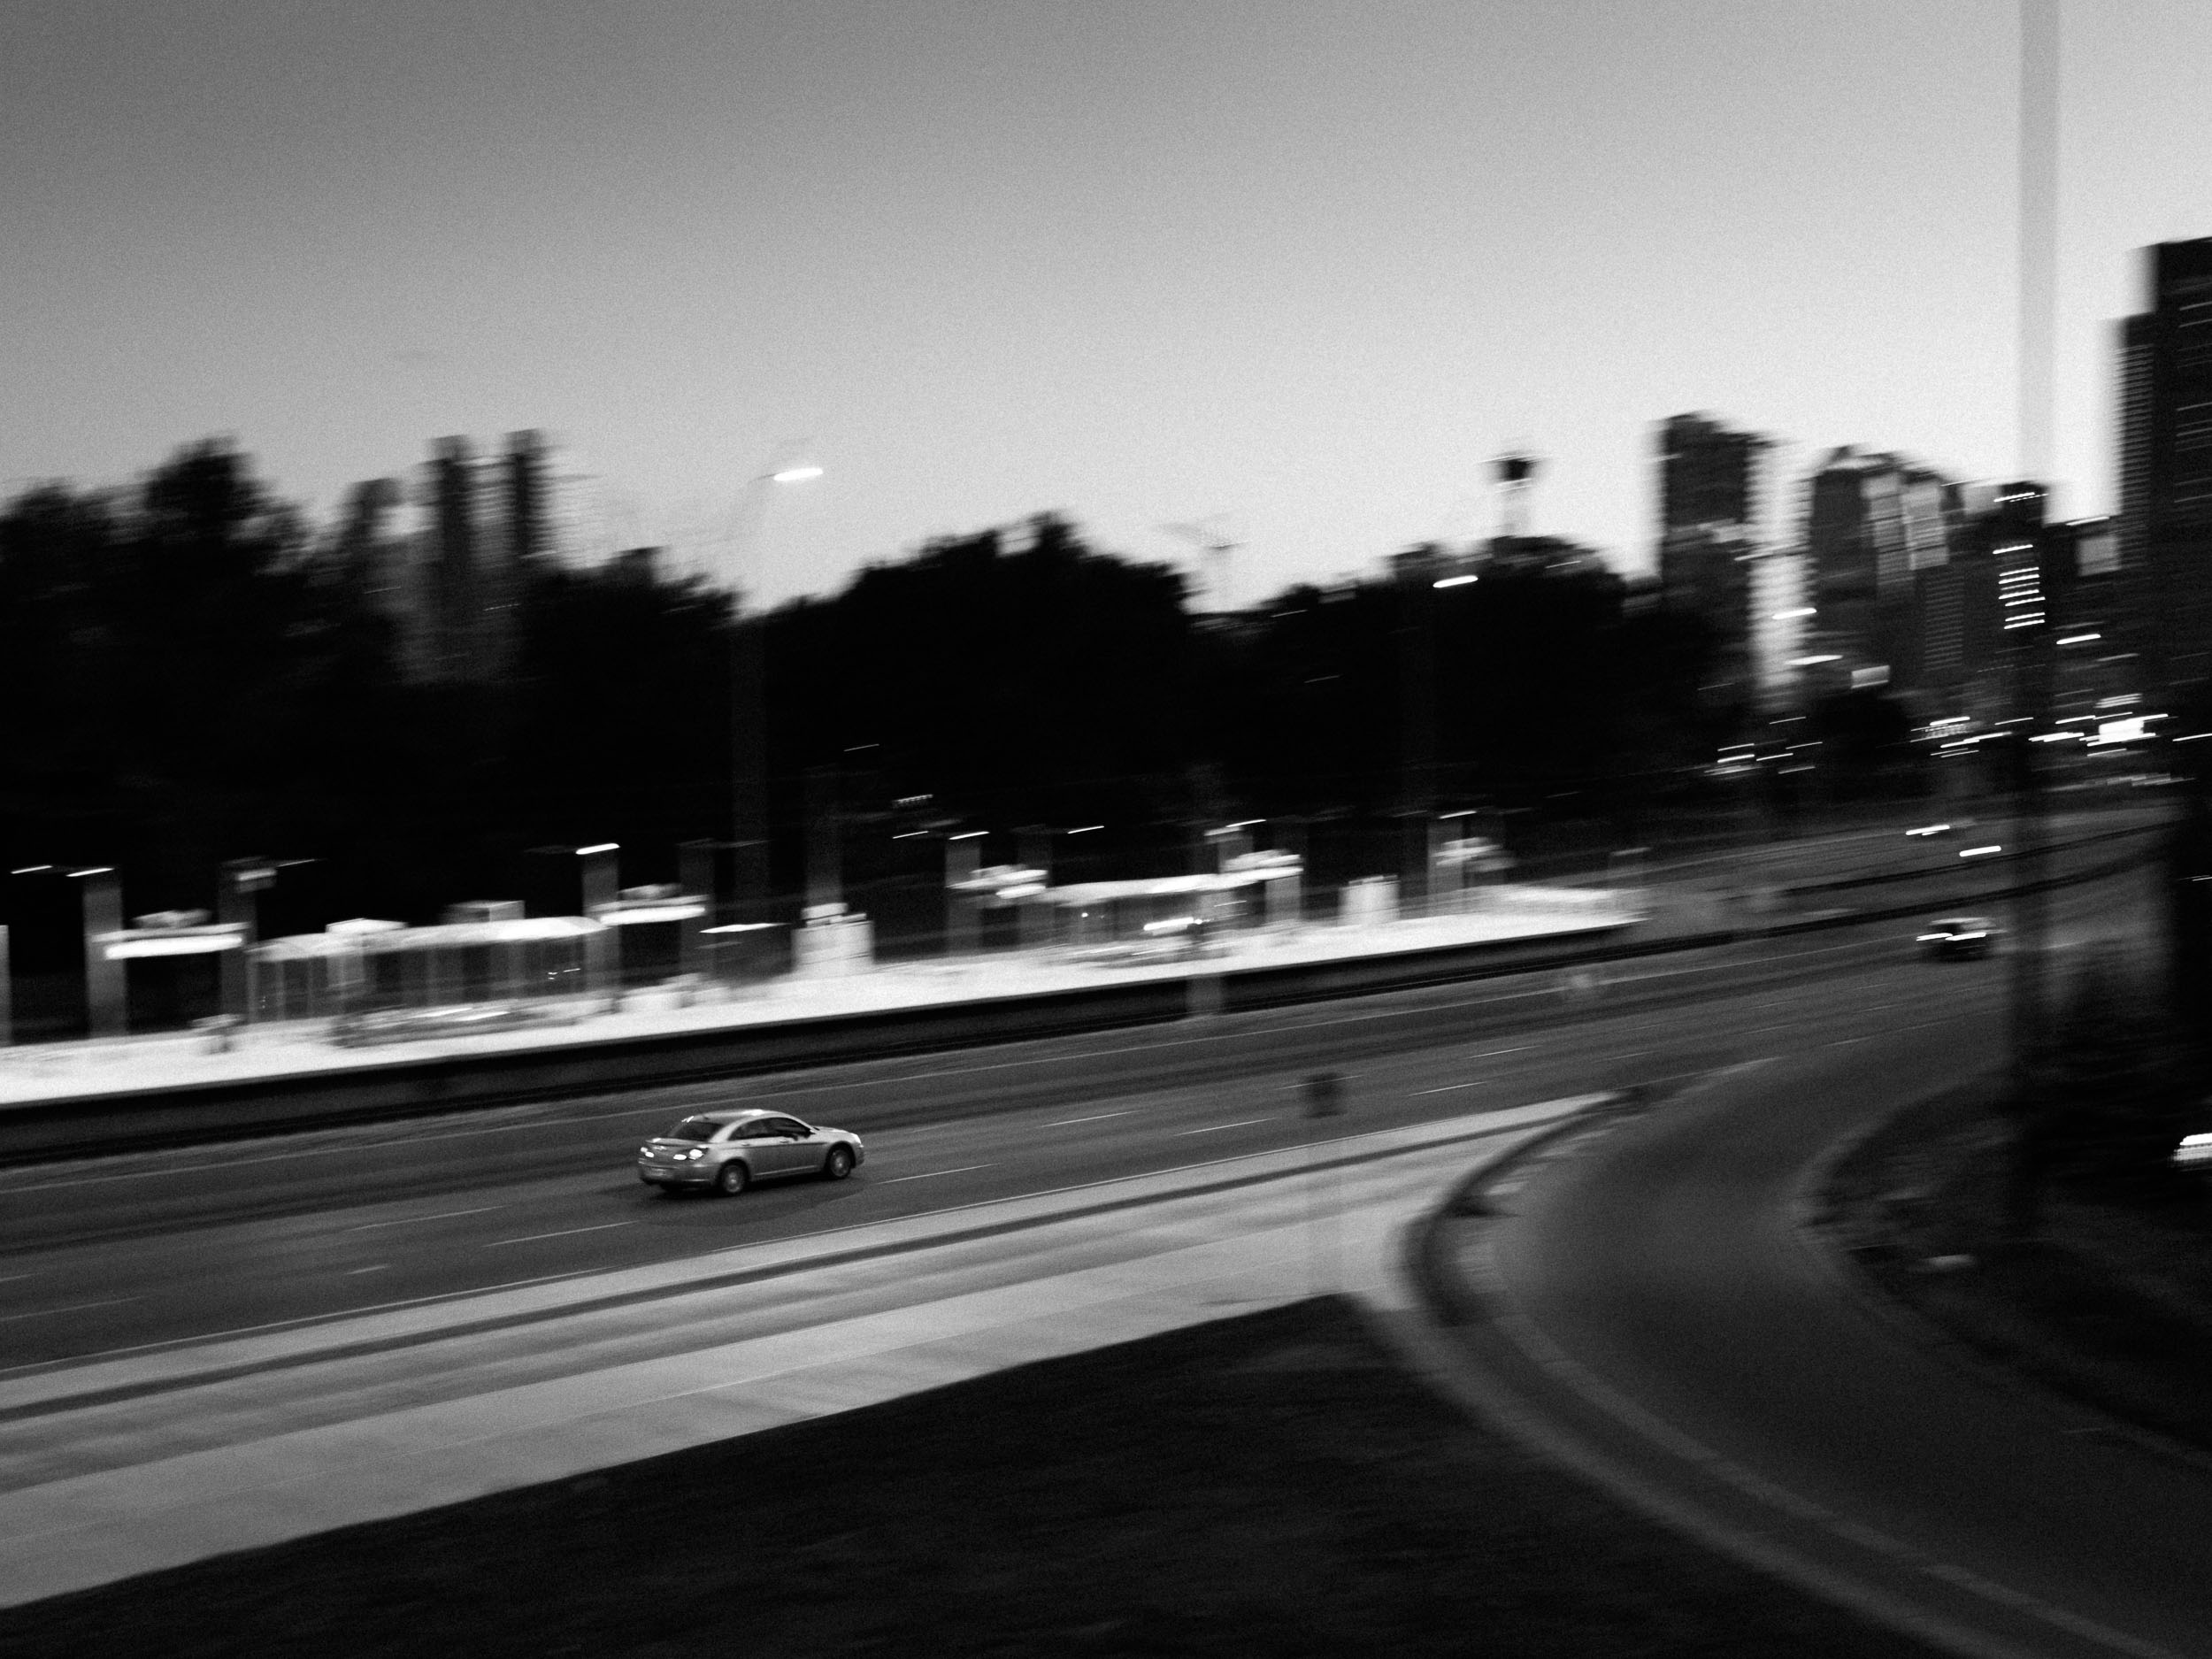 Part of the goal of these blog posts is about finding ways to make photos that look unlike my other photos. Panning, motion blur, and black and white made that happen in this one.